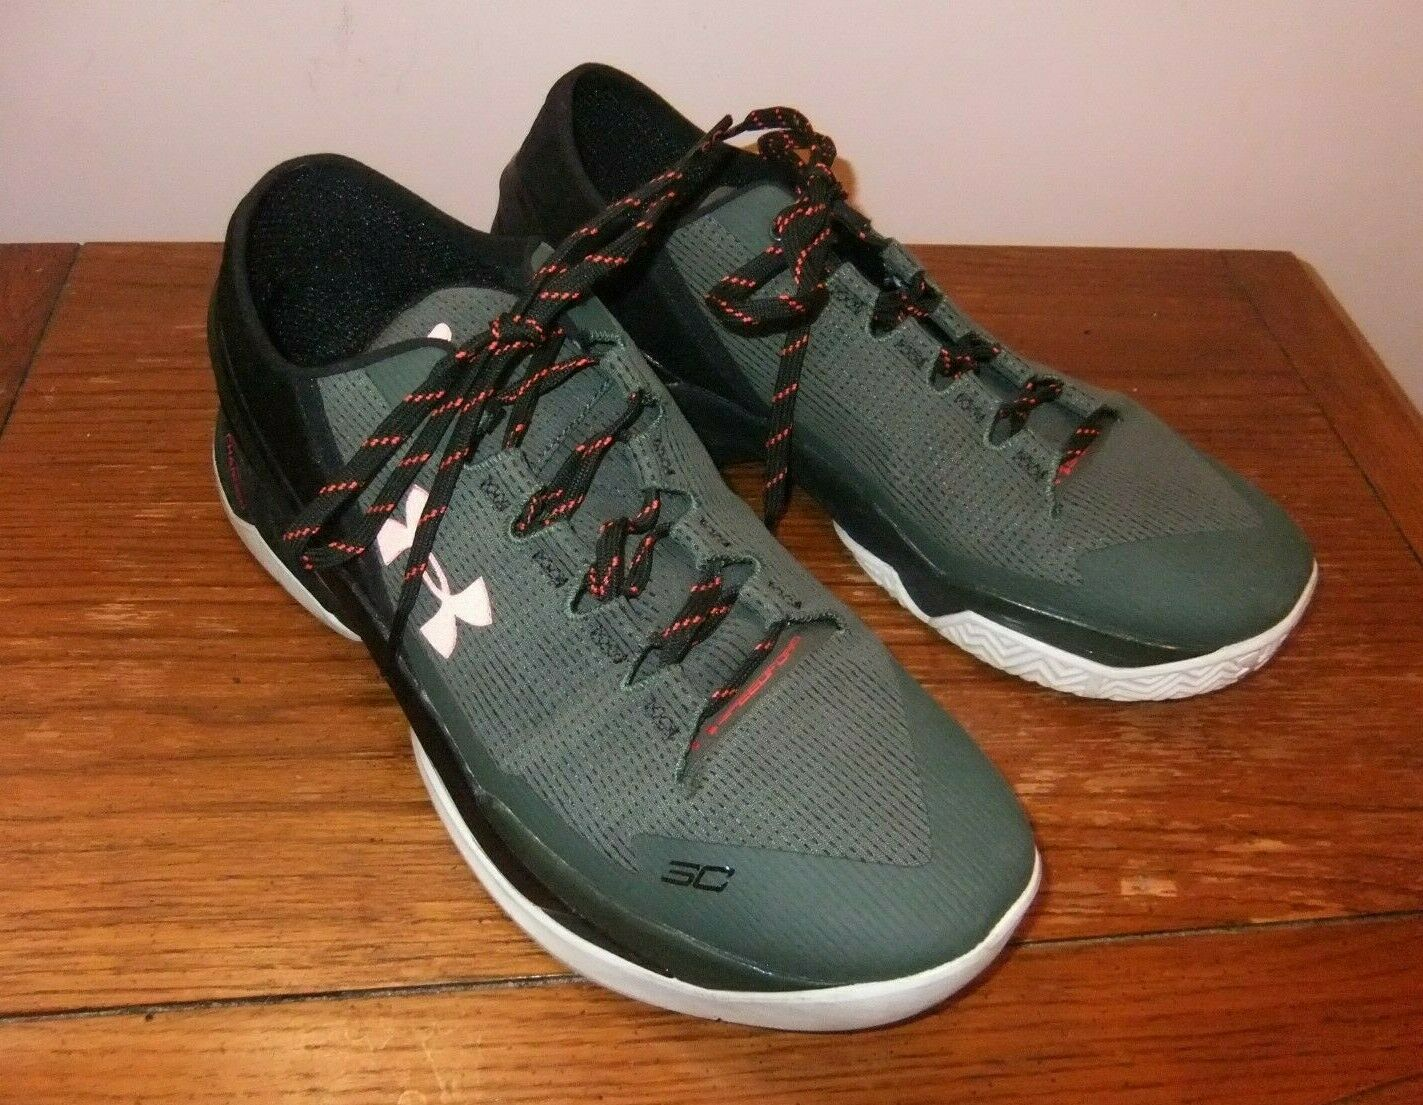 UNDER ARMOUR SC Charged Sneakers I Can